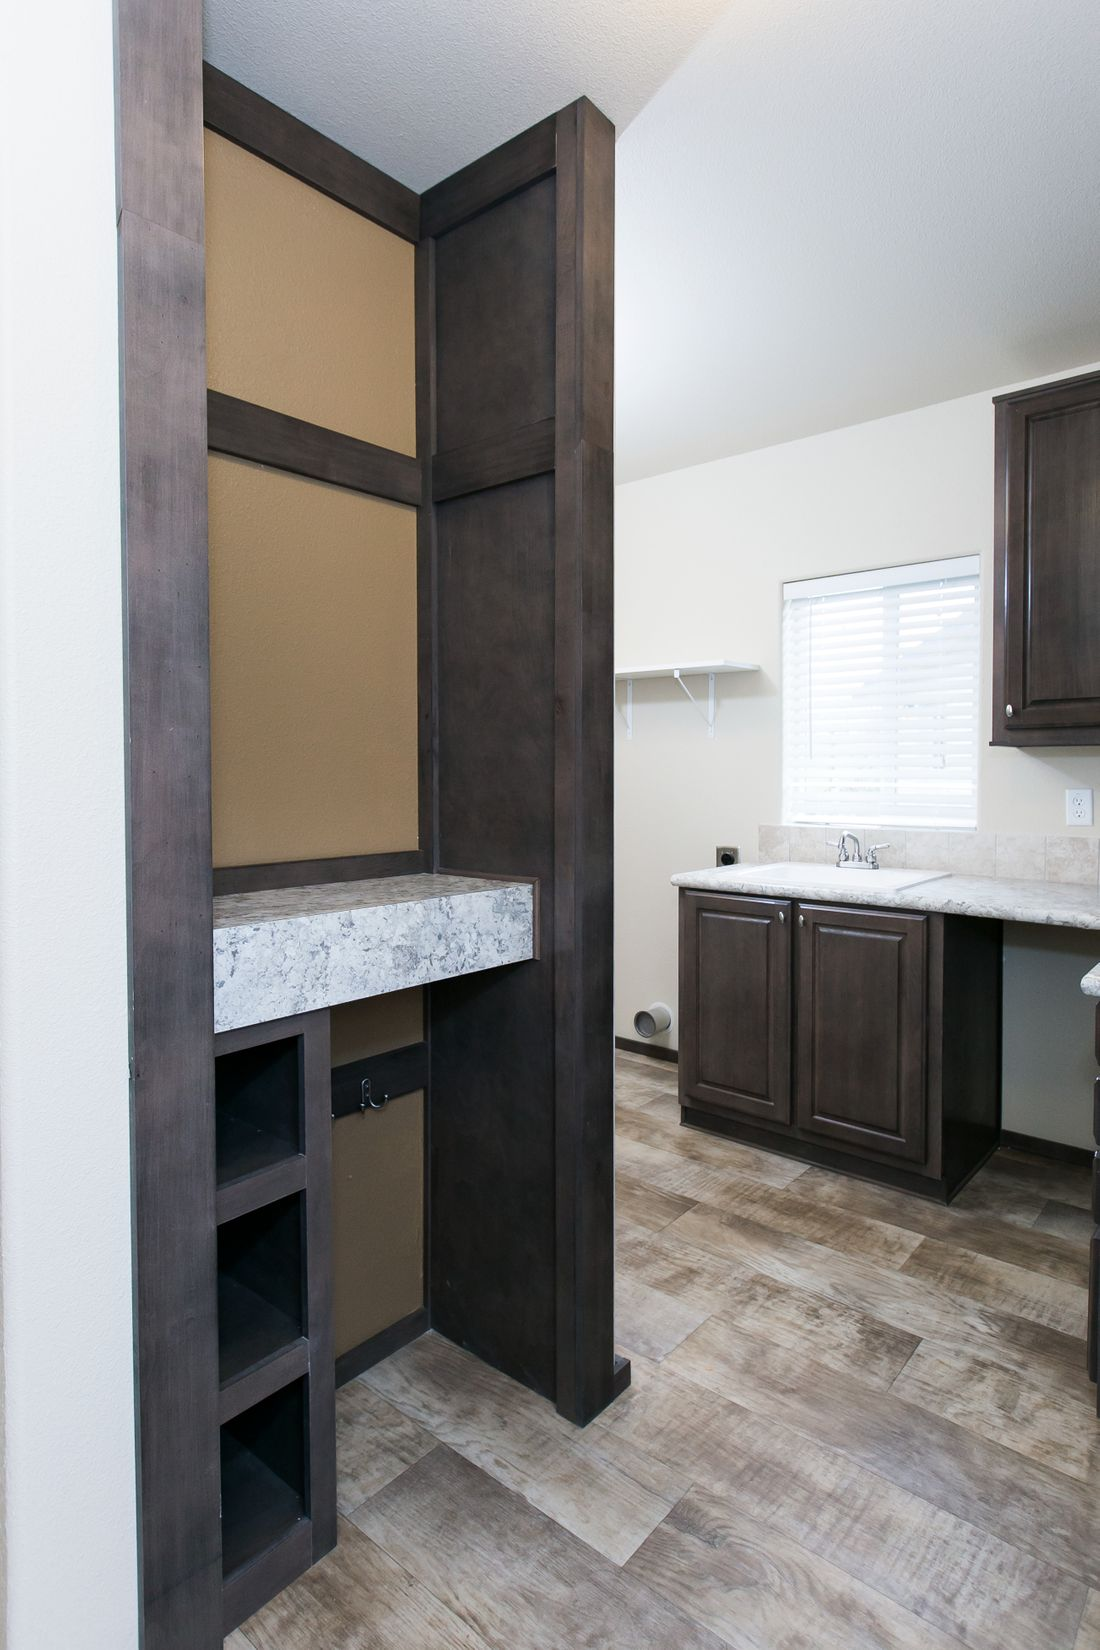 The 2021 COLUMBIA RIVER Utility Room. This Manufactured Mobile Home features 3 bedrooms and 2 baths.